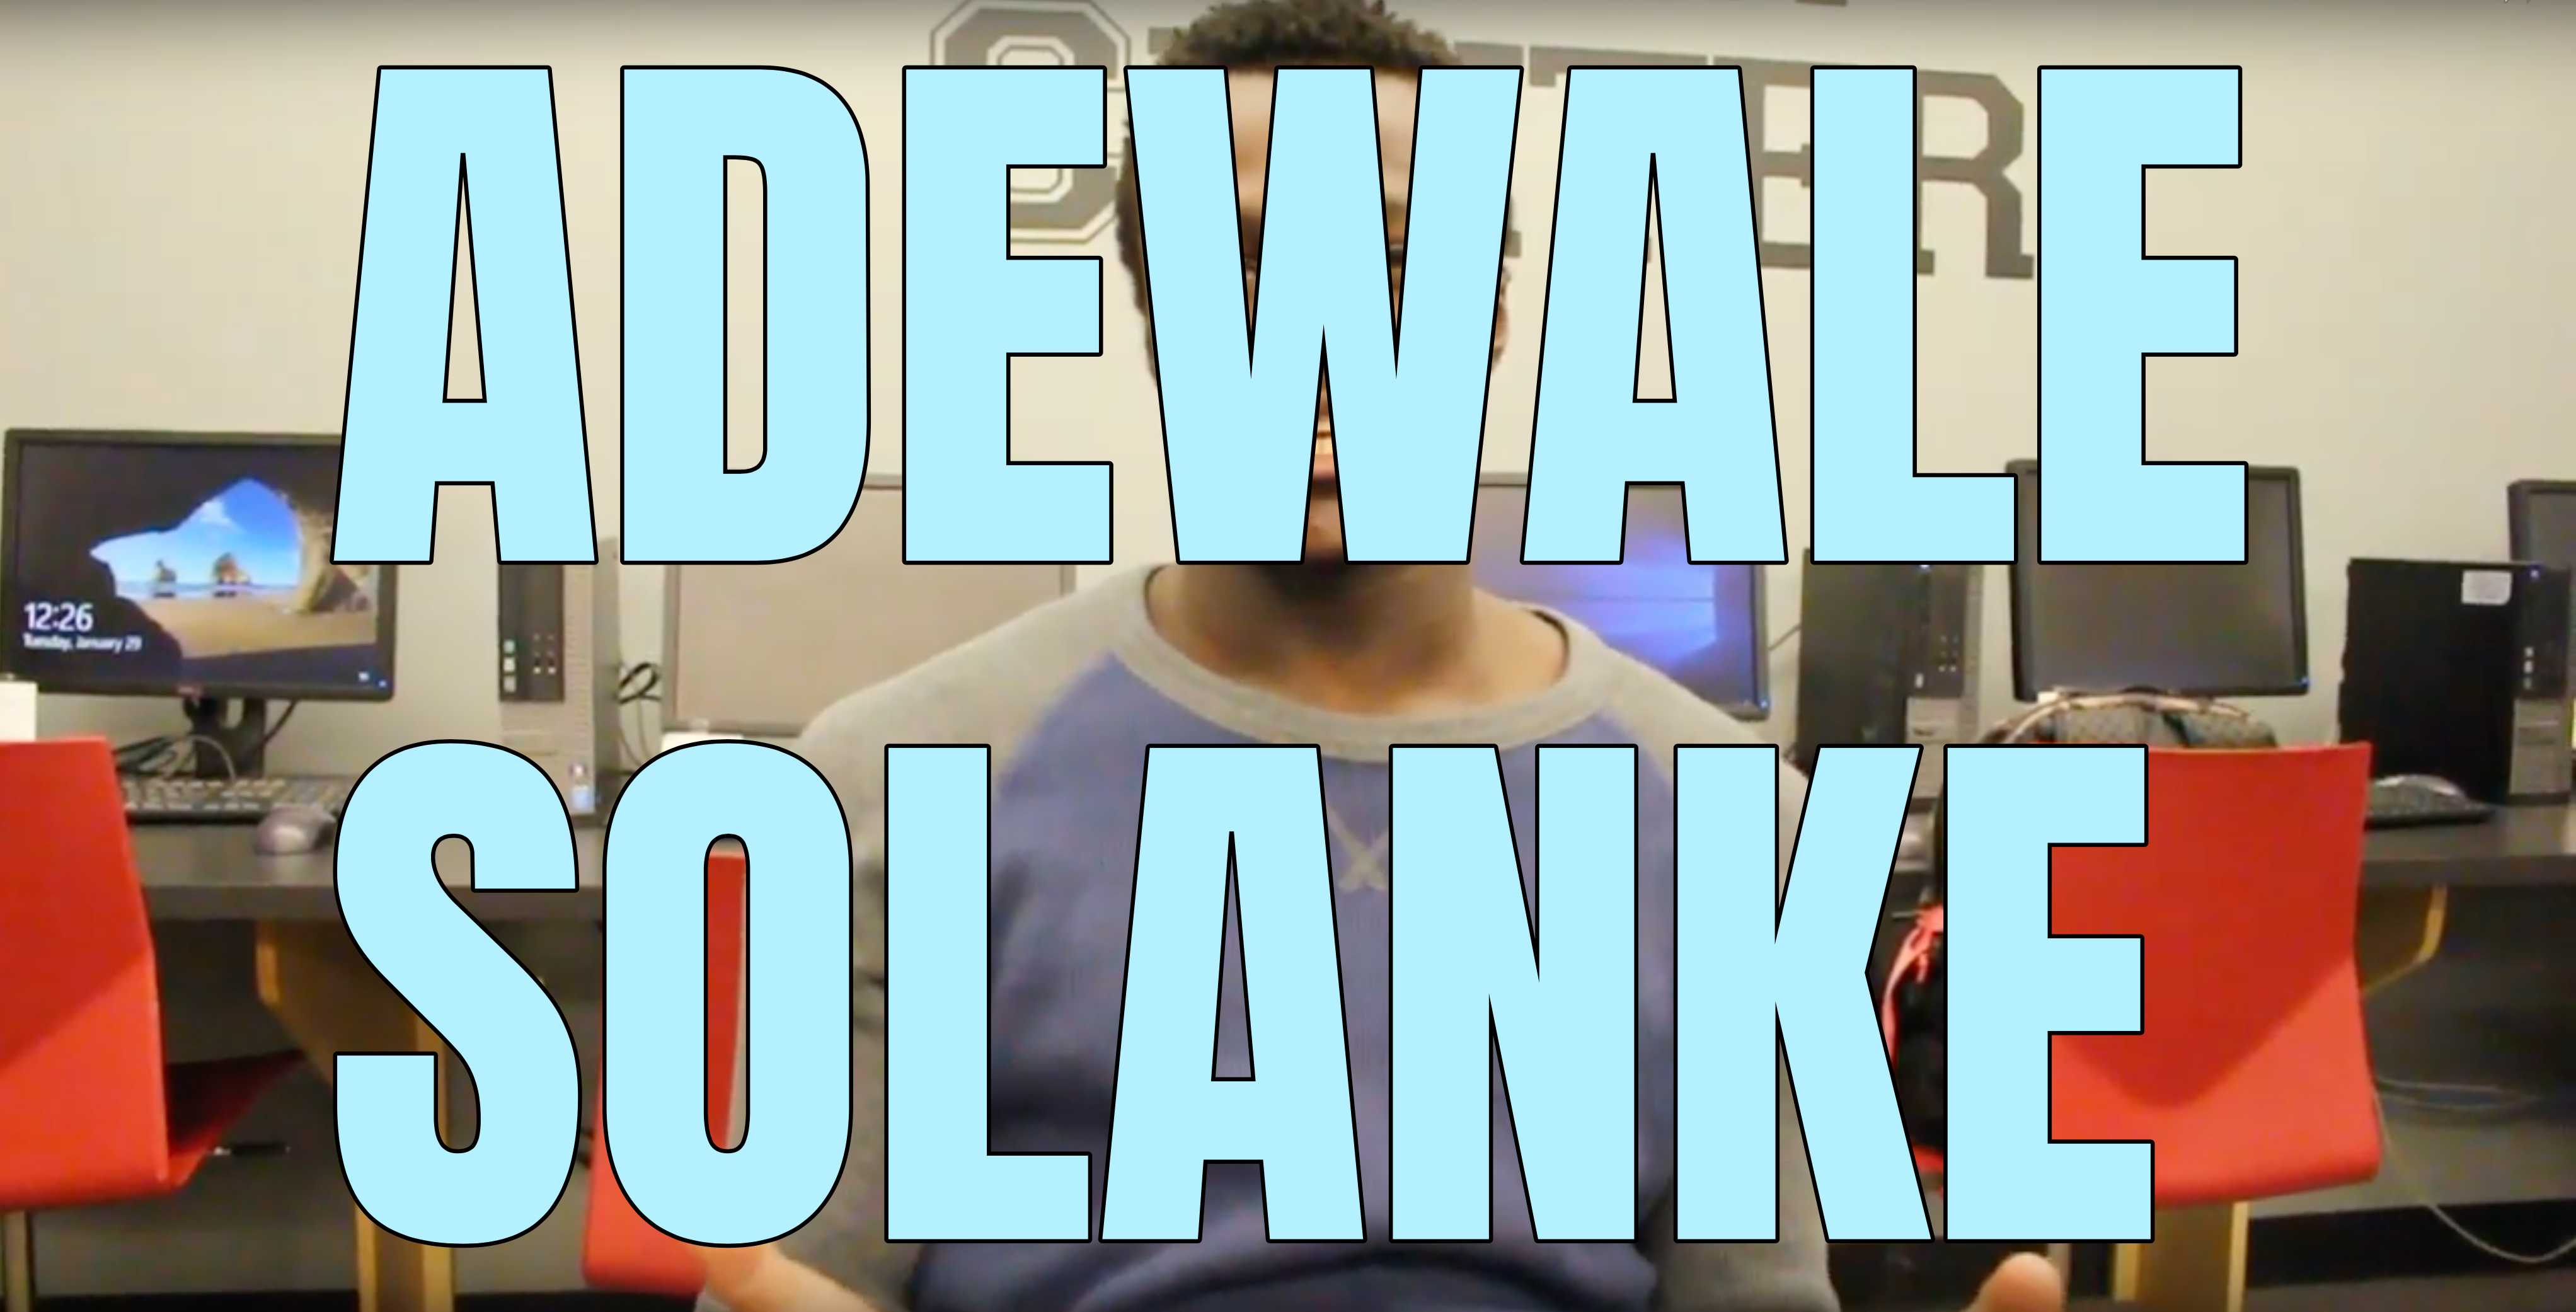 Video: The soccer player Adewale Solanke